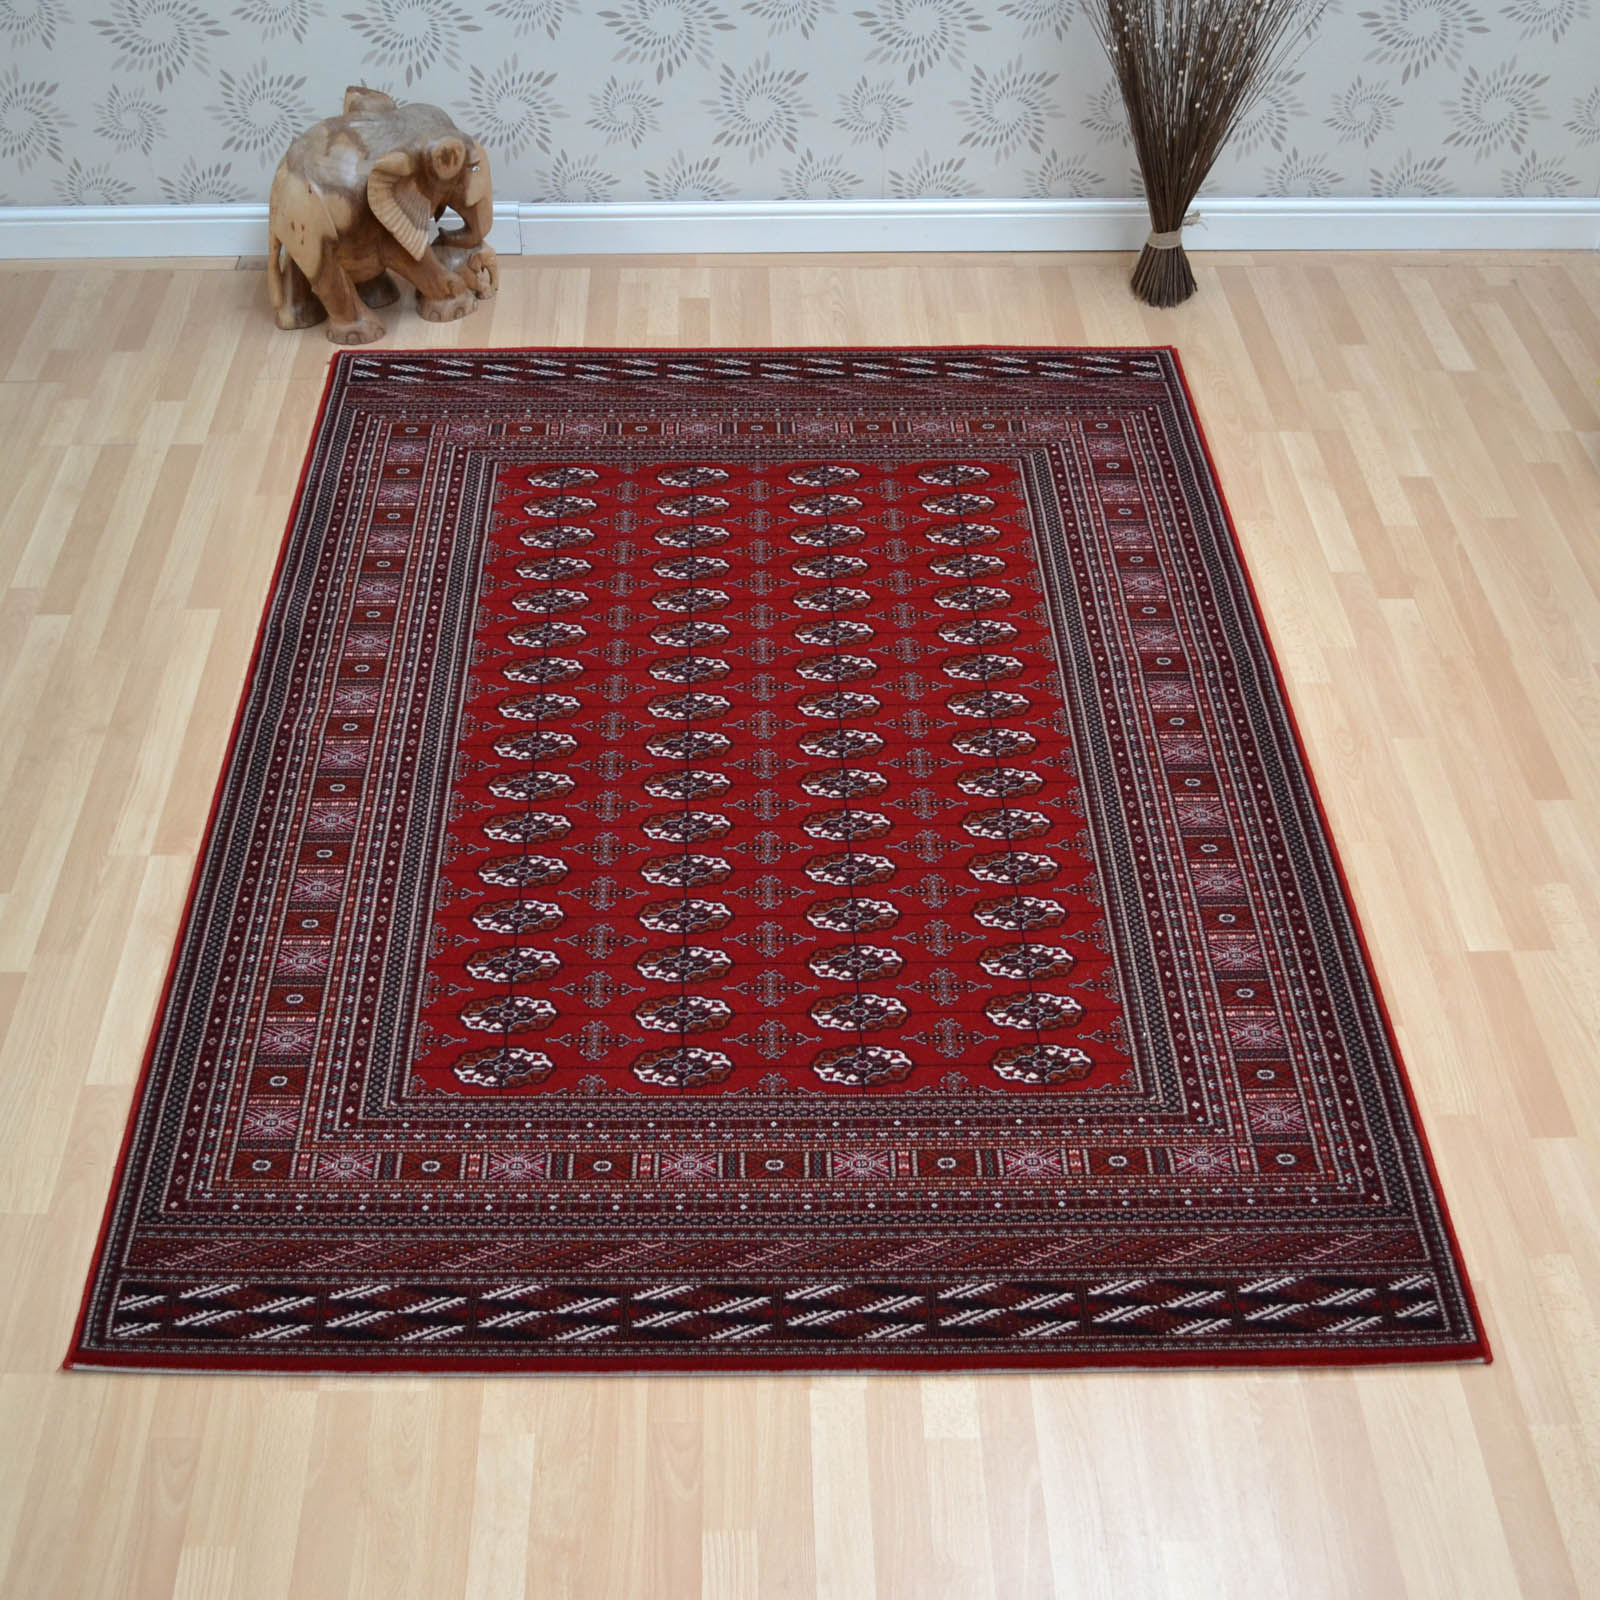 Nain Rugs 6211 677 Red by Lano